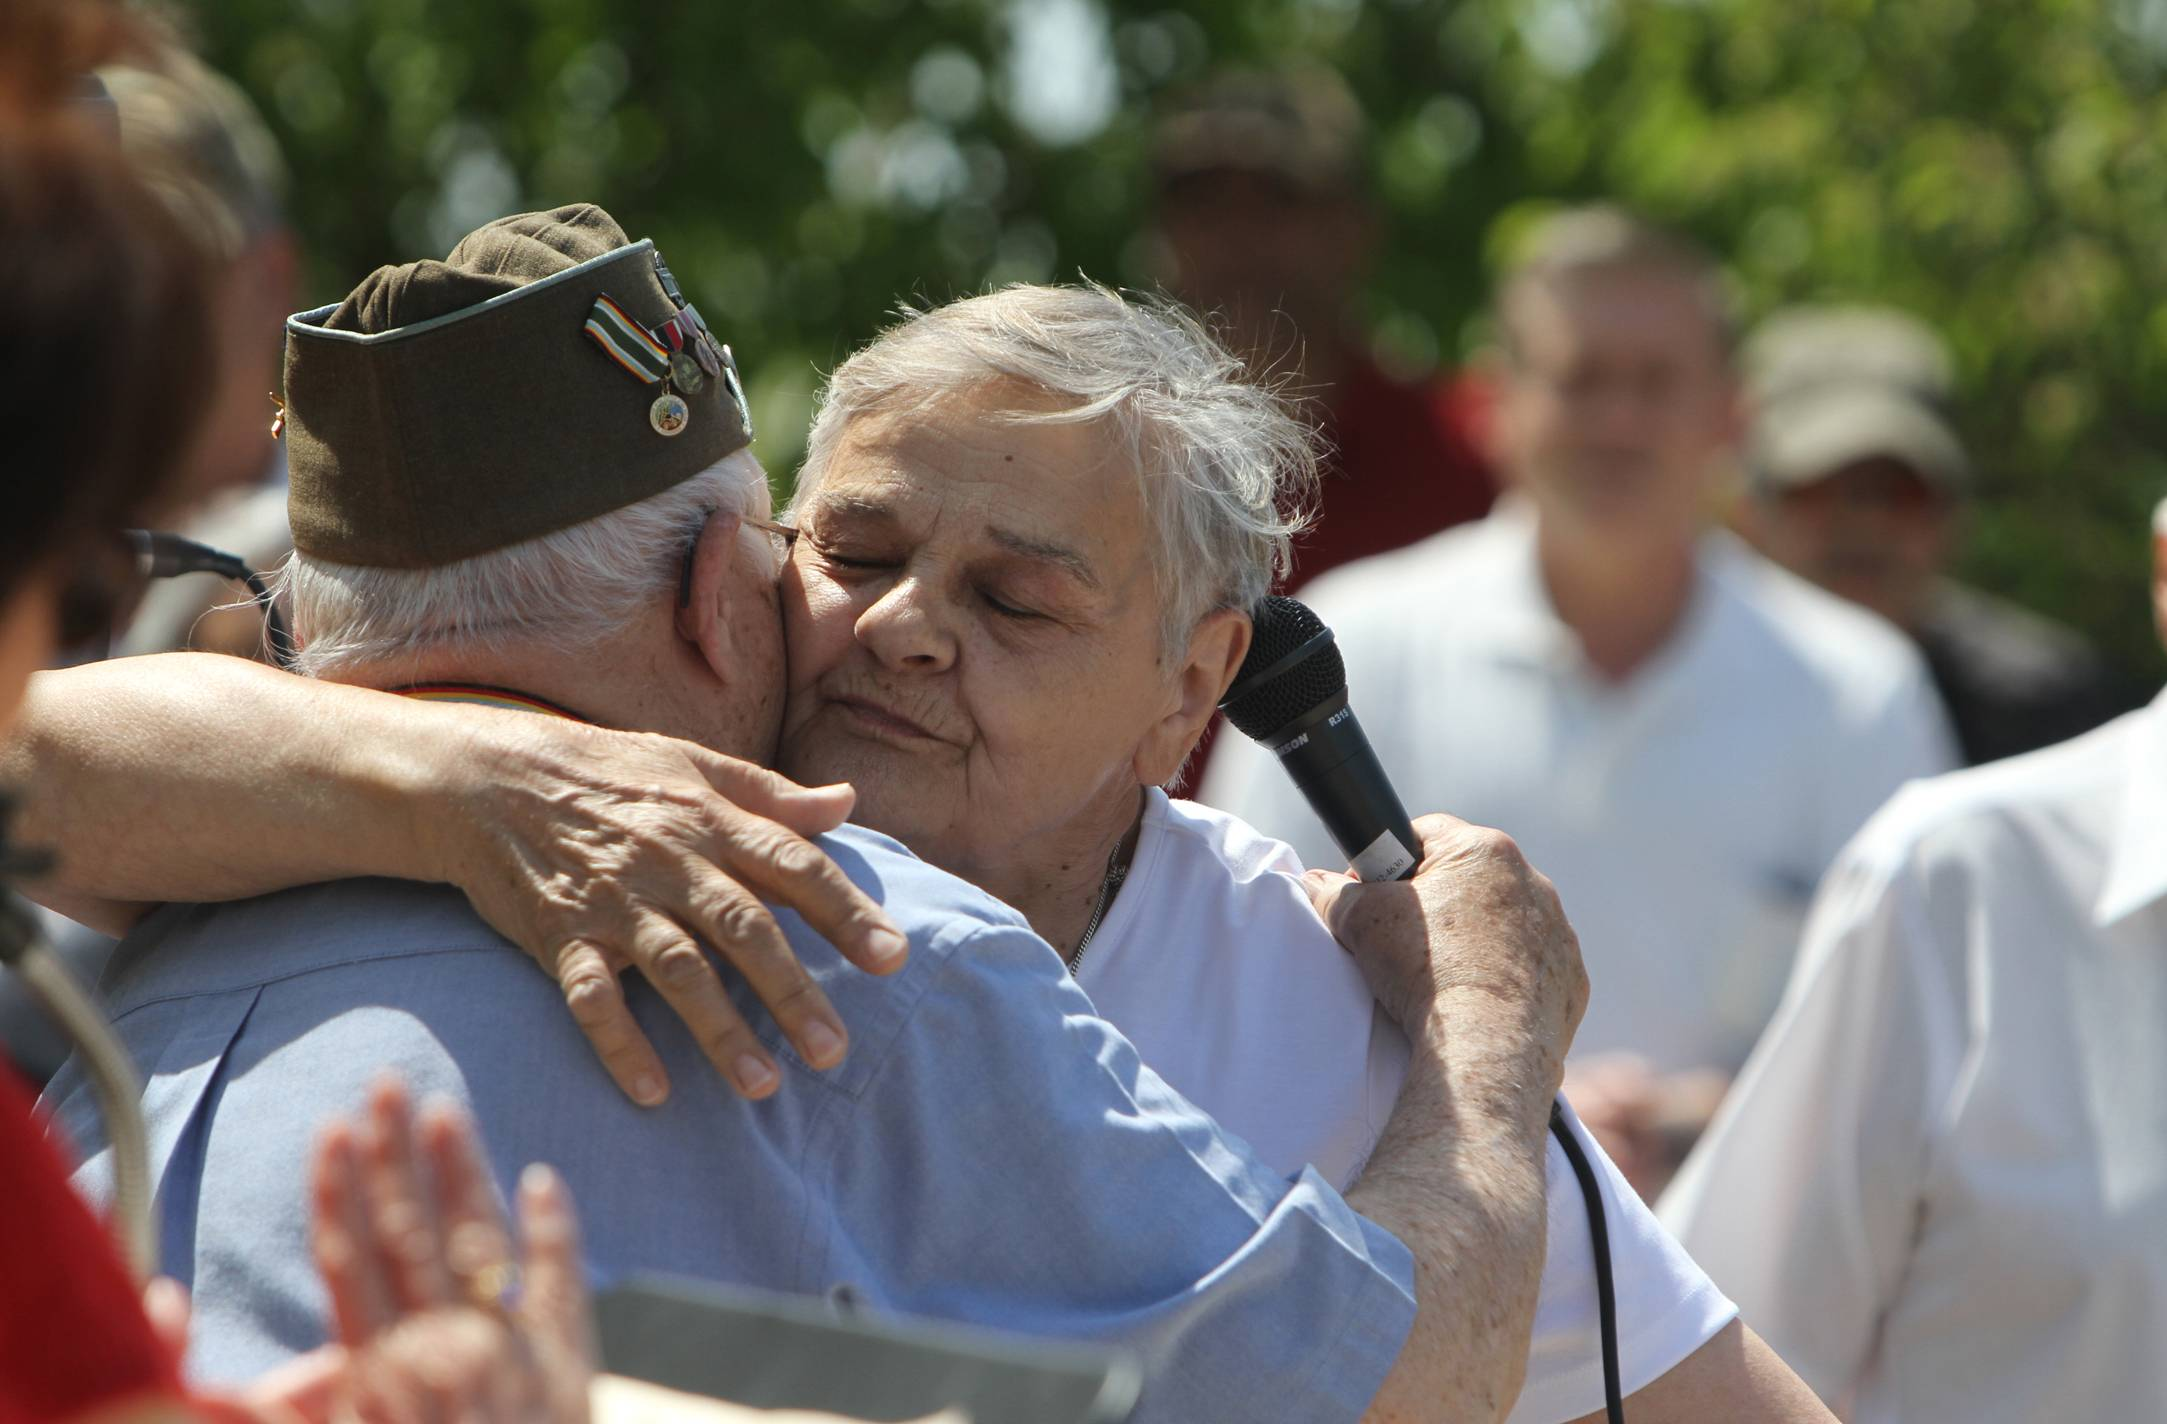 Elisabeth Blaakman, hugs John Foy of Greece, N.Y., during the Veterans of the Battle of the Bulge Memorial Day Ceremony at Ontario Beach in Rochester, N.Y., Monday, May 26, 2014. Blaakman was a child in Holland during WW II and thanked all the veterans that were there for liberating her country during the ceremony. Foy was an infantry machine-gunner in George Patton's Third Army during the Battle of the Bulge.